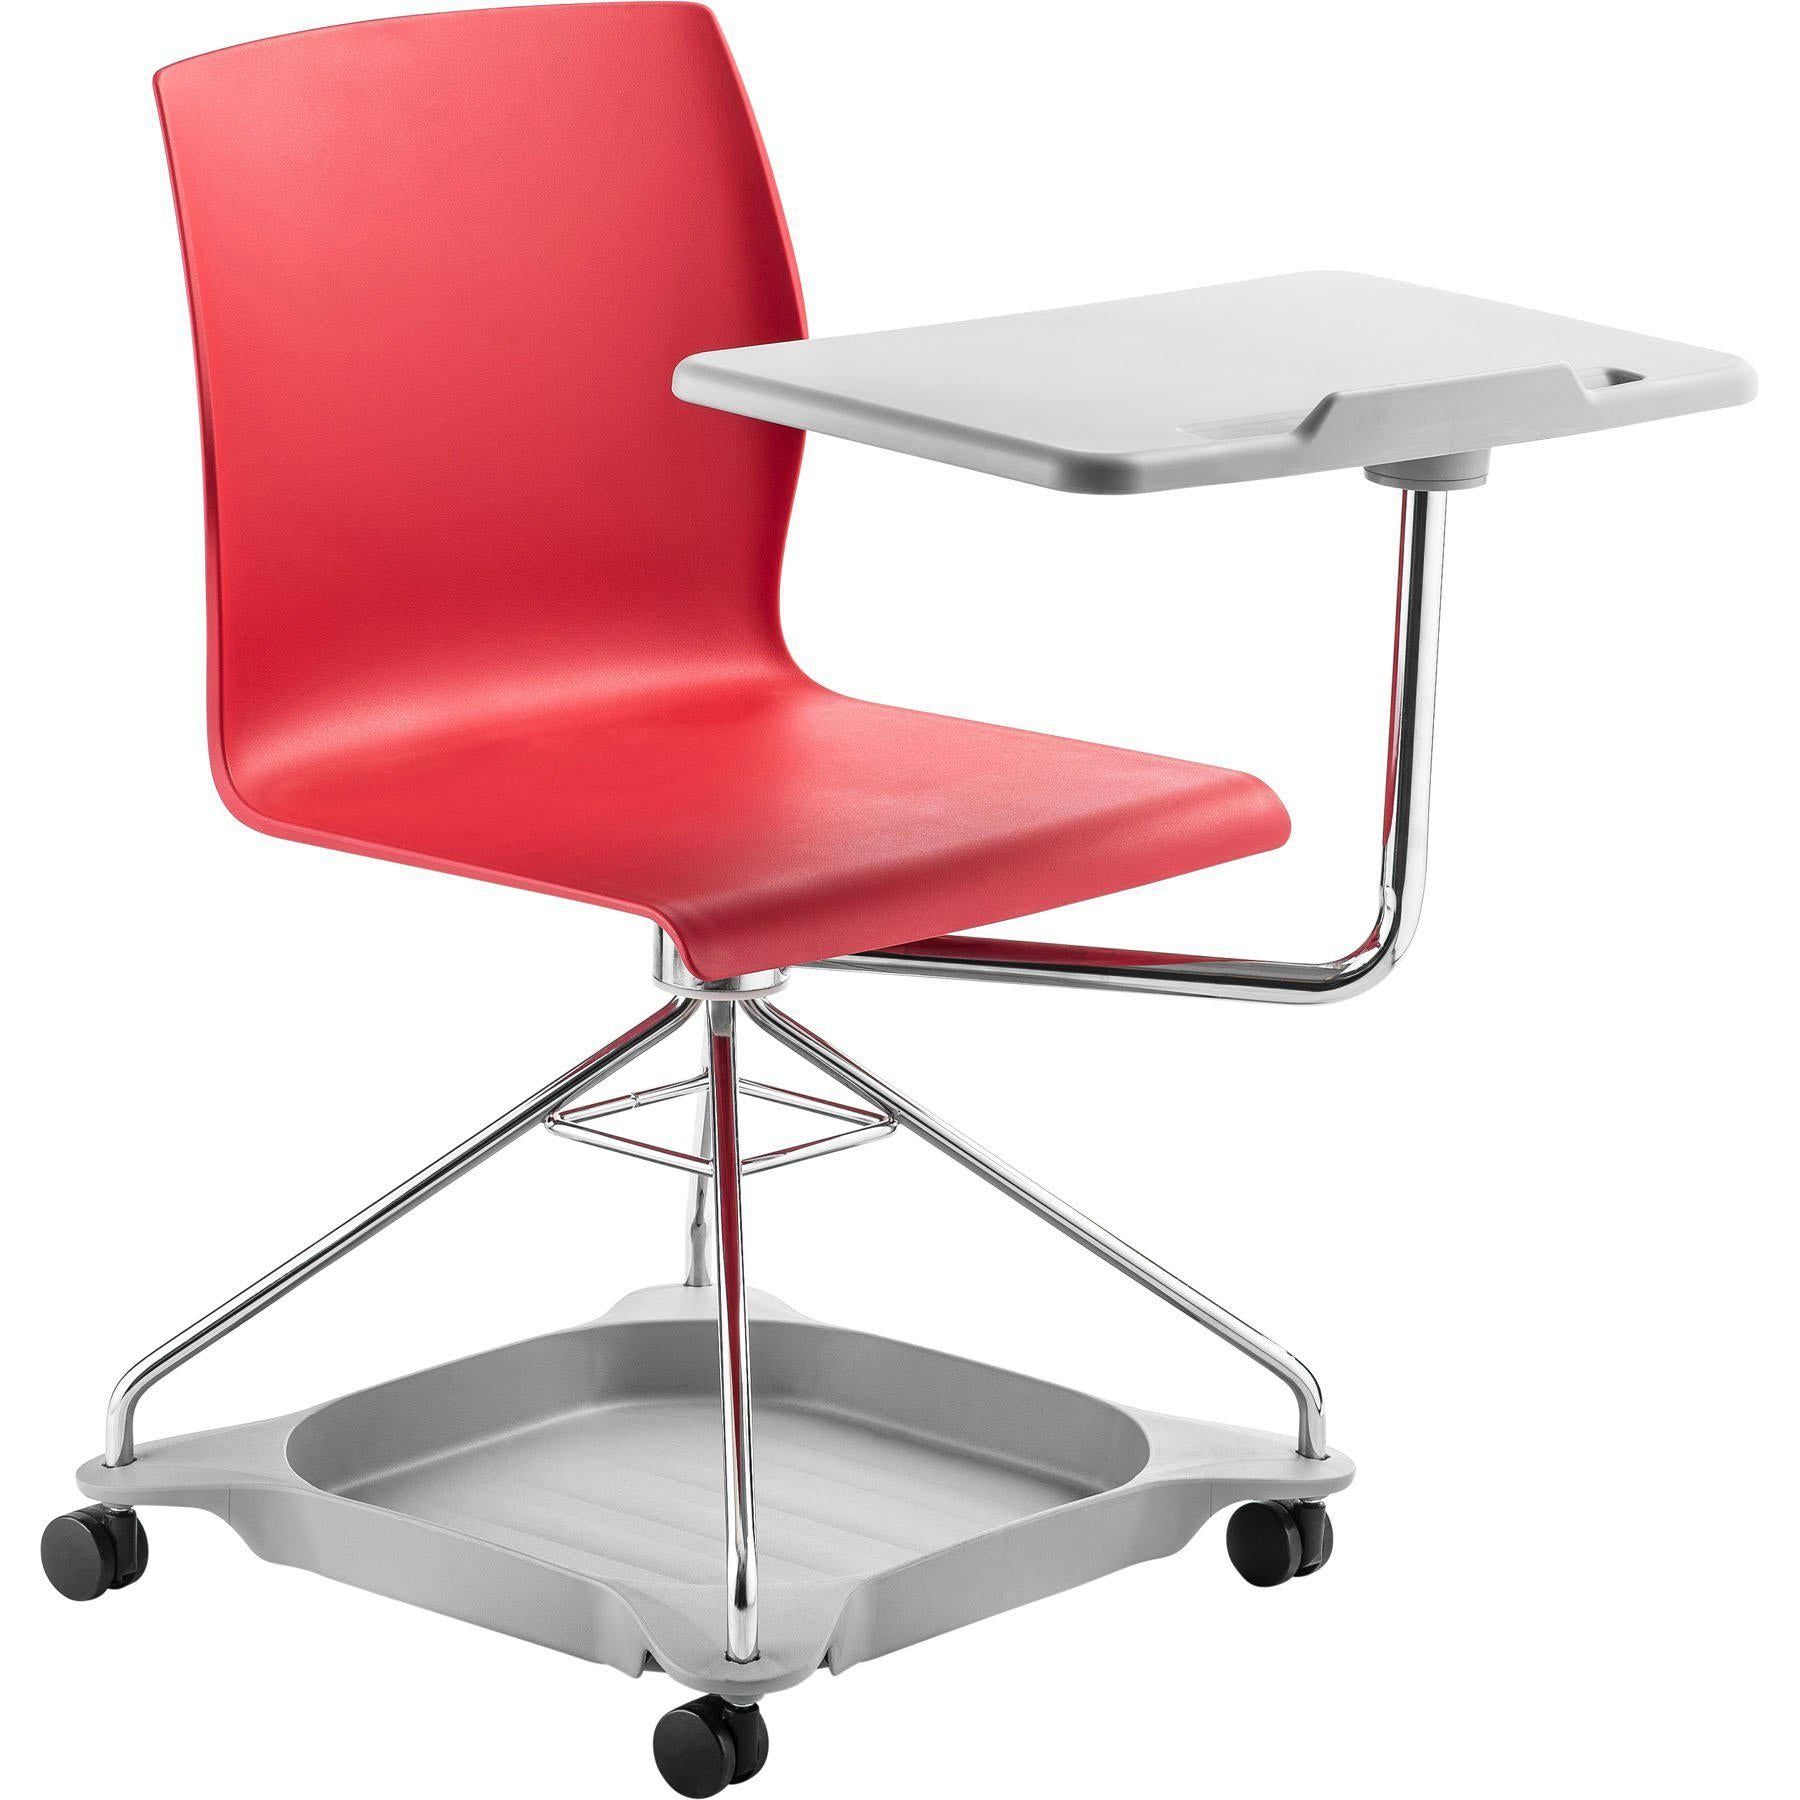 CoGo Chair on the Go Mobile Tablet Chair-Chairs-Red with Grey Base & Tablet-